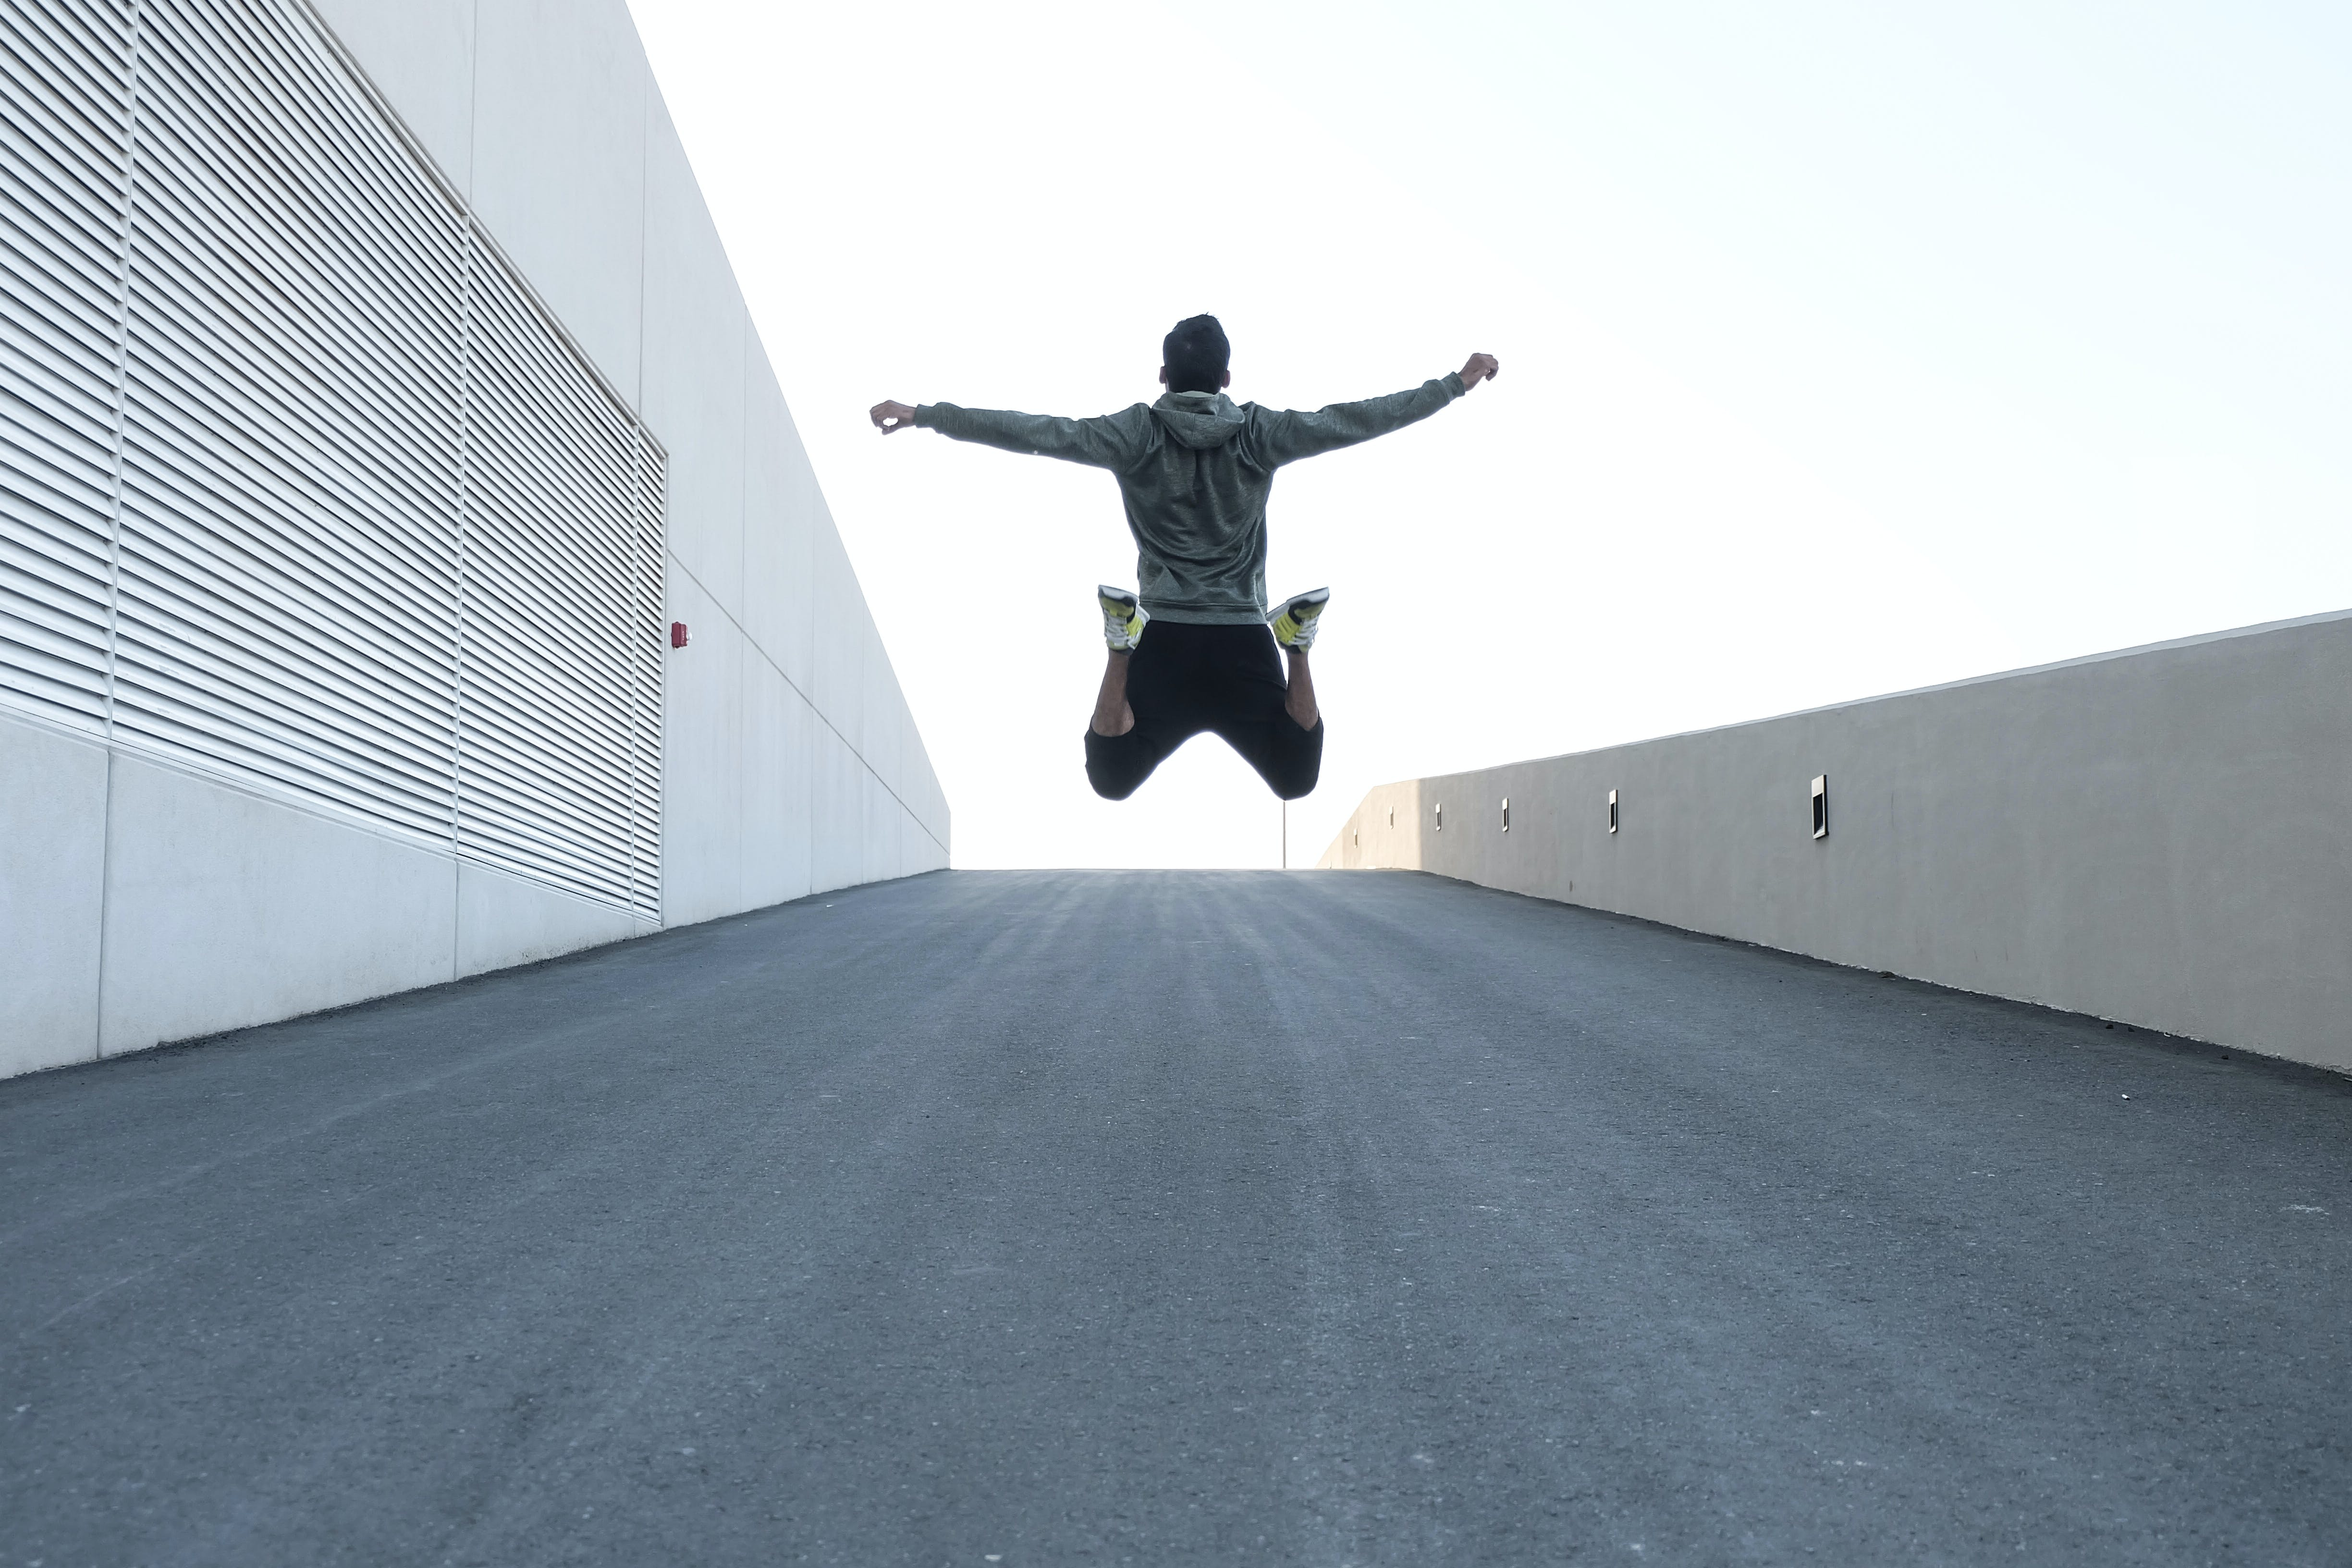 Man in Gray Hoodie Jump With Open Arms